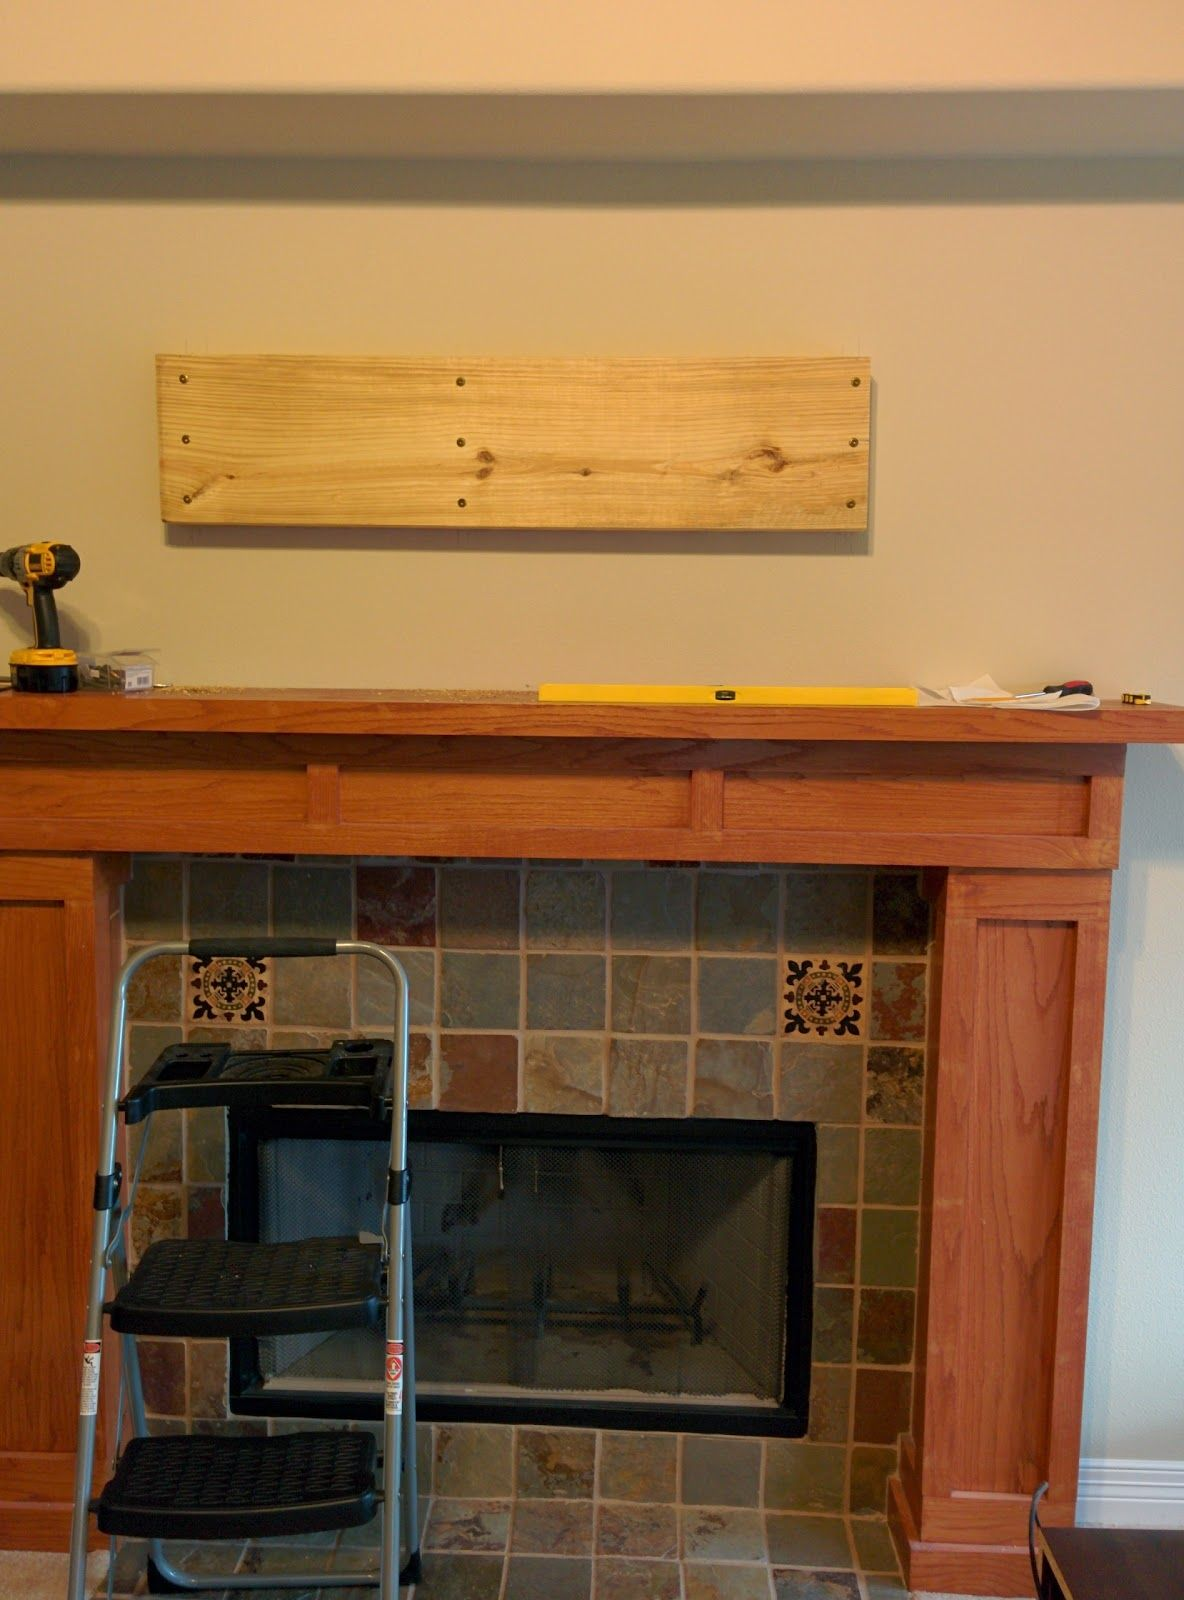 Mount Tv Above Fireplace No Studs Home Ideas Tv Above